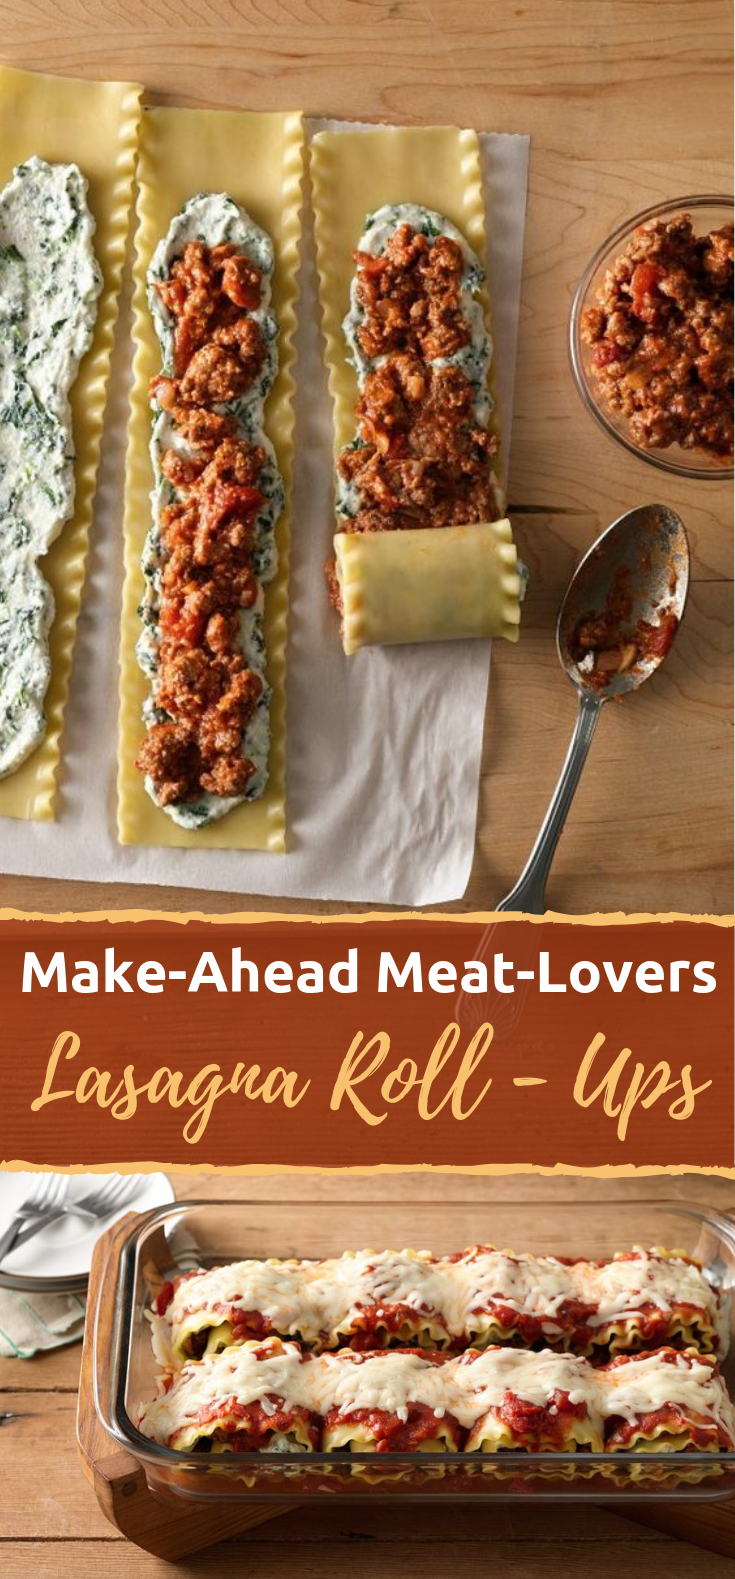 Make-Ahead Meat-Lovers' Lasagna Roll-Ups #Dinner #Meals